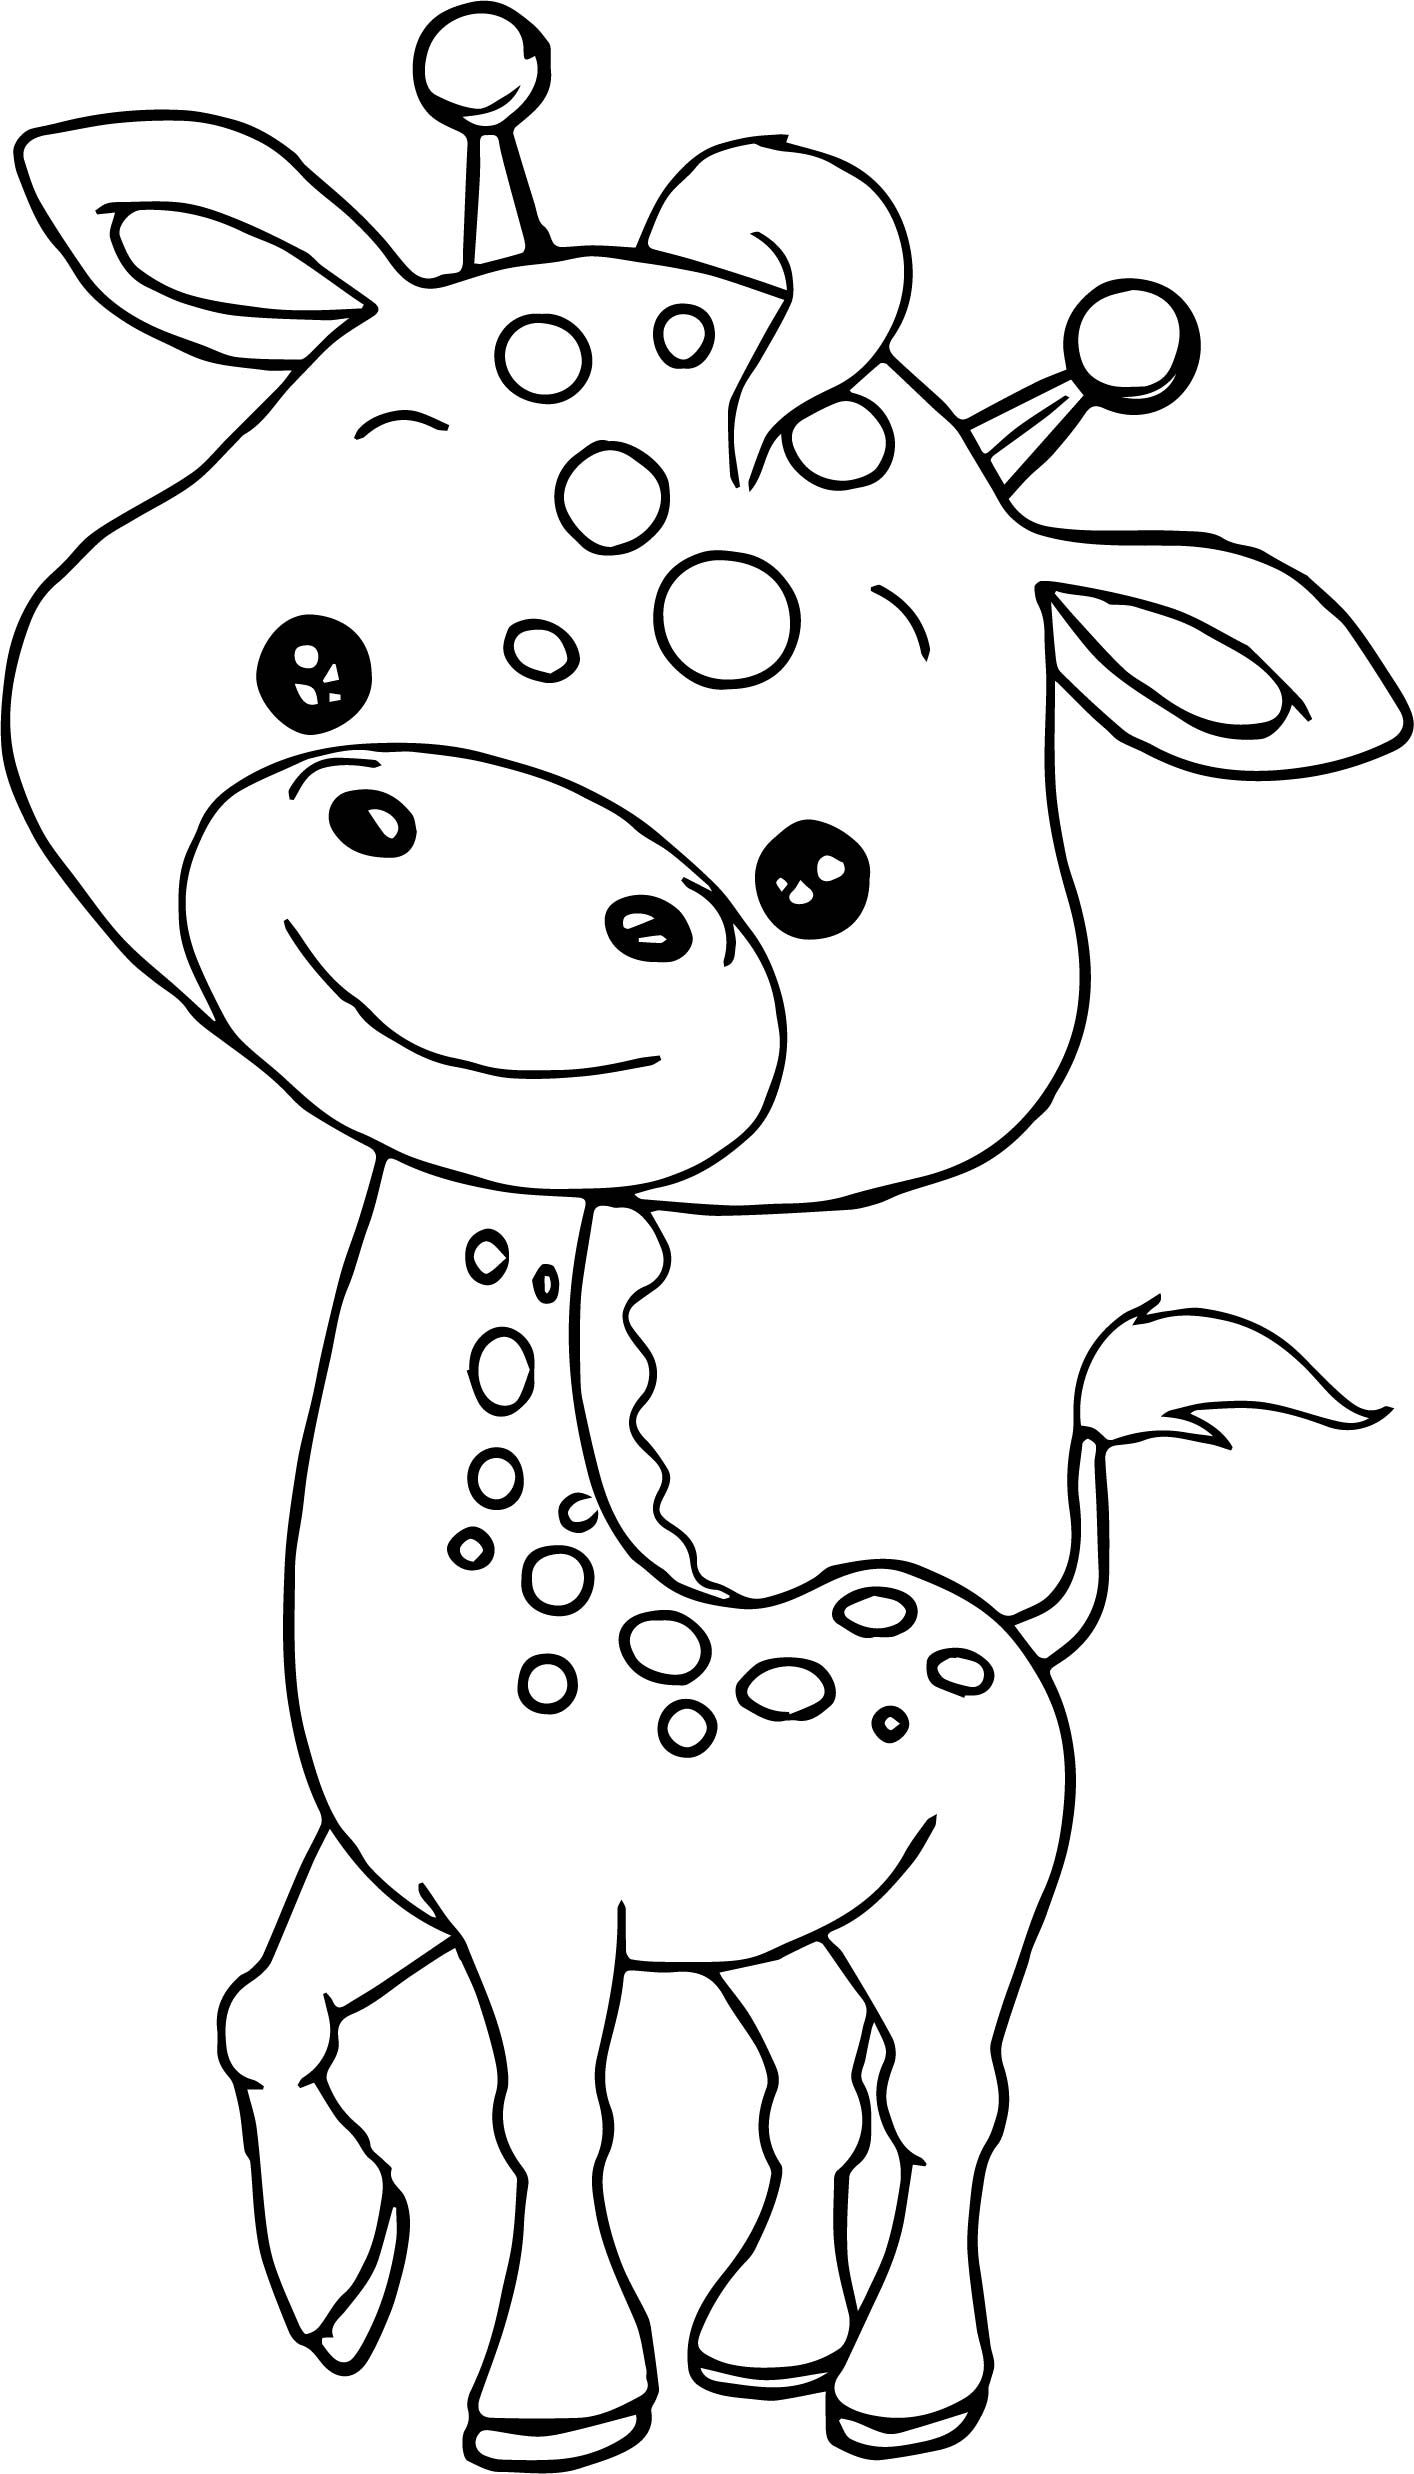 zoo animal coloring pages for preschool zoo animals coloring page free printable coloring pages zoo pages preschool for coloring animal